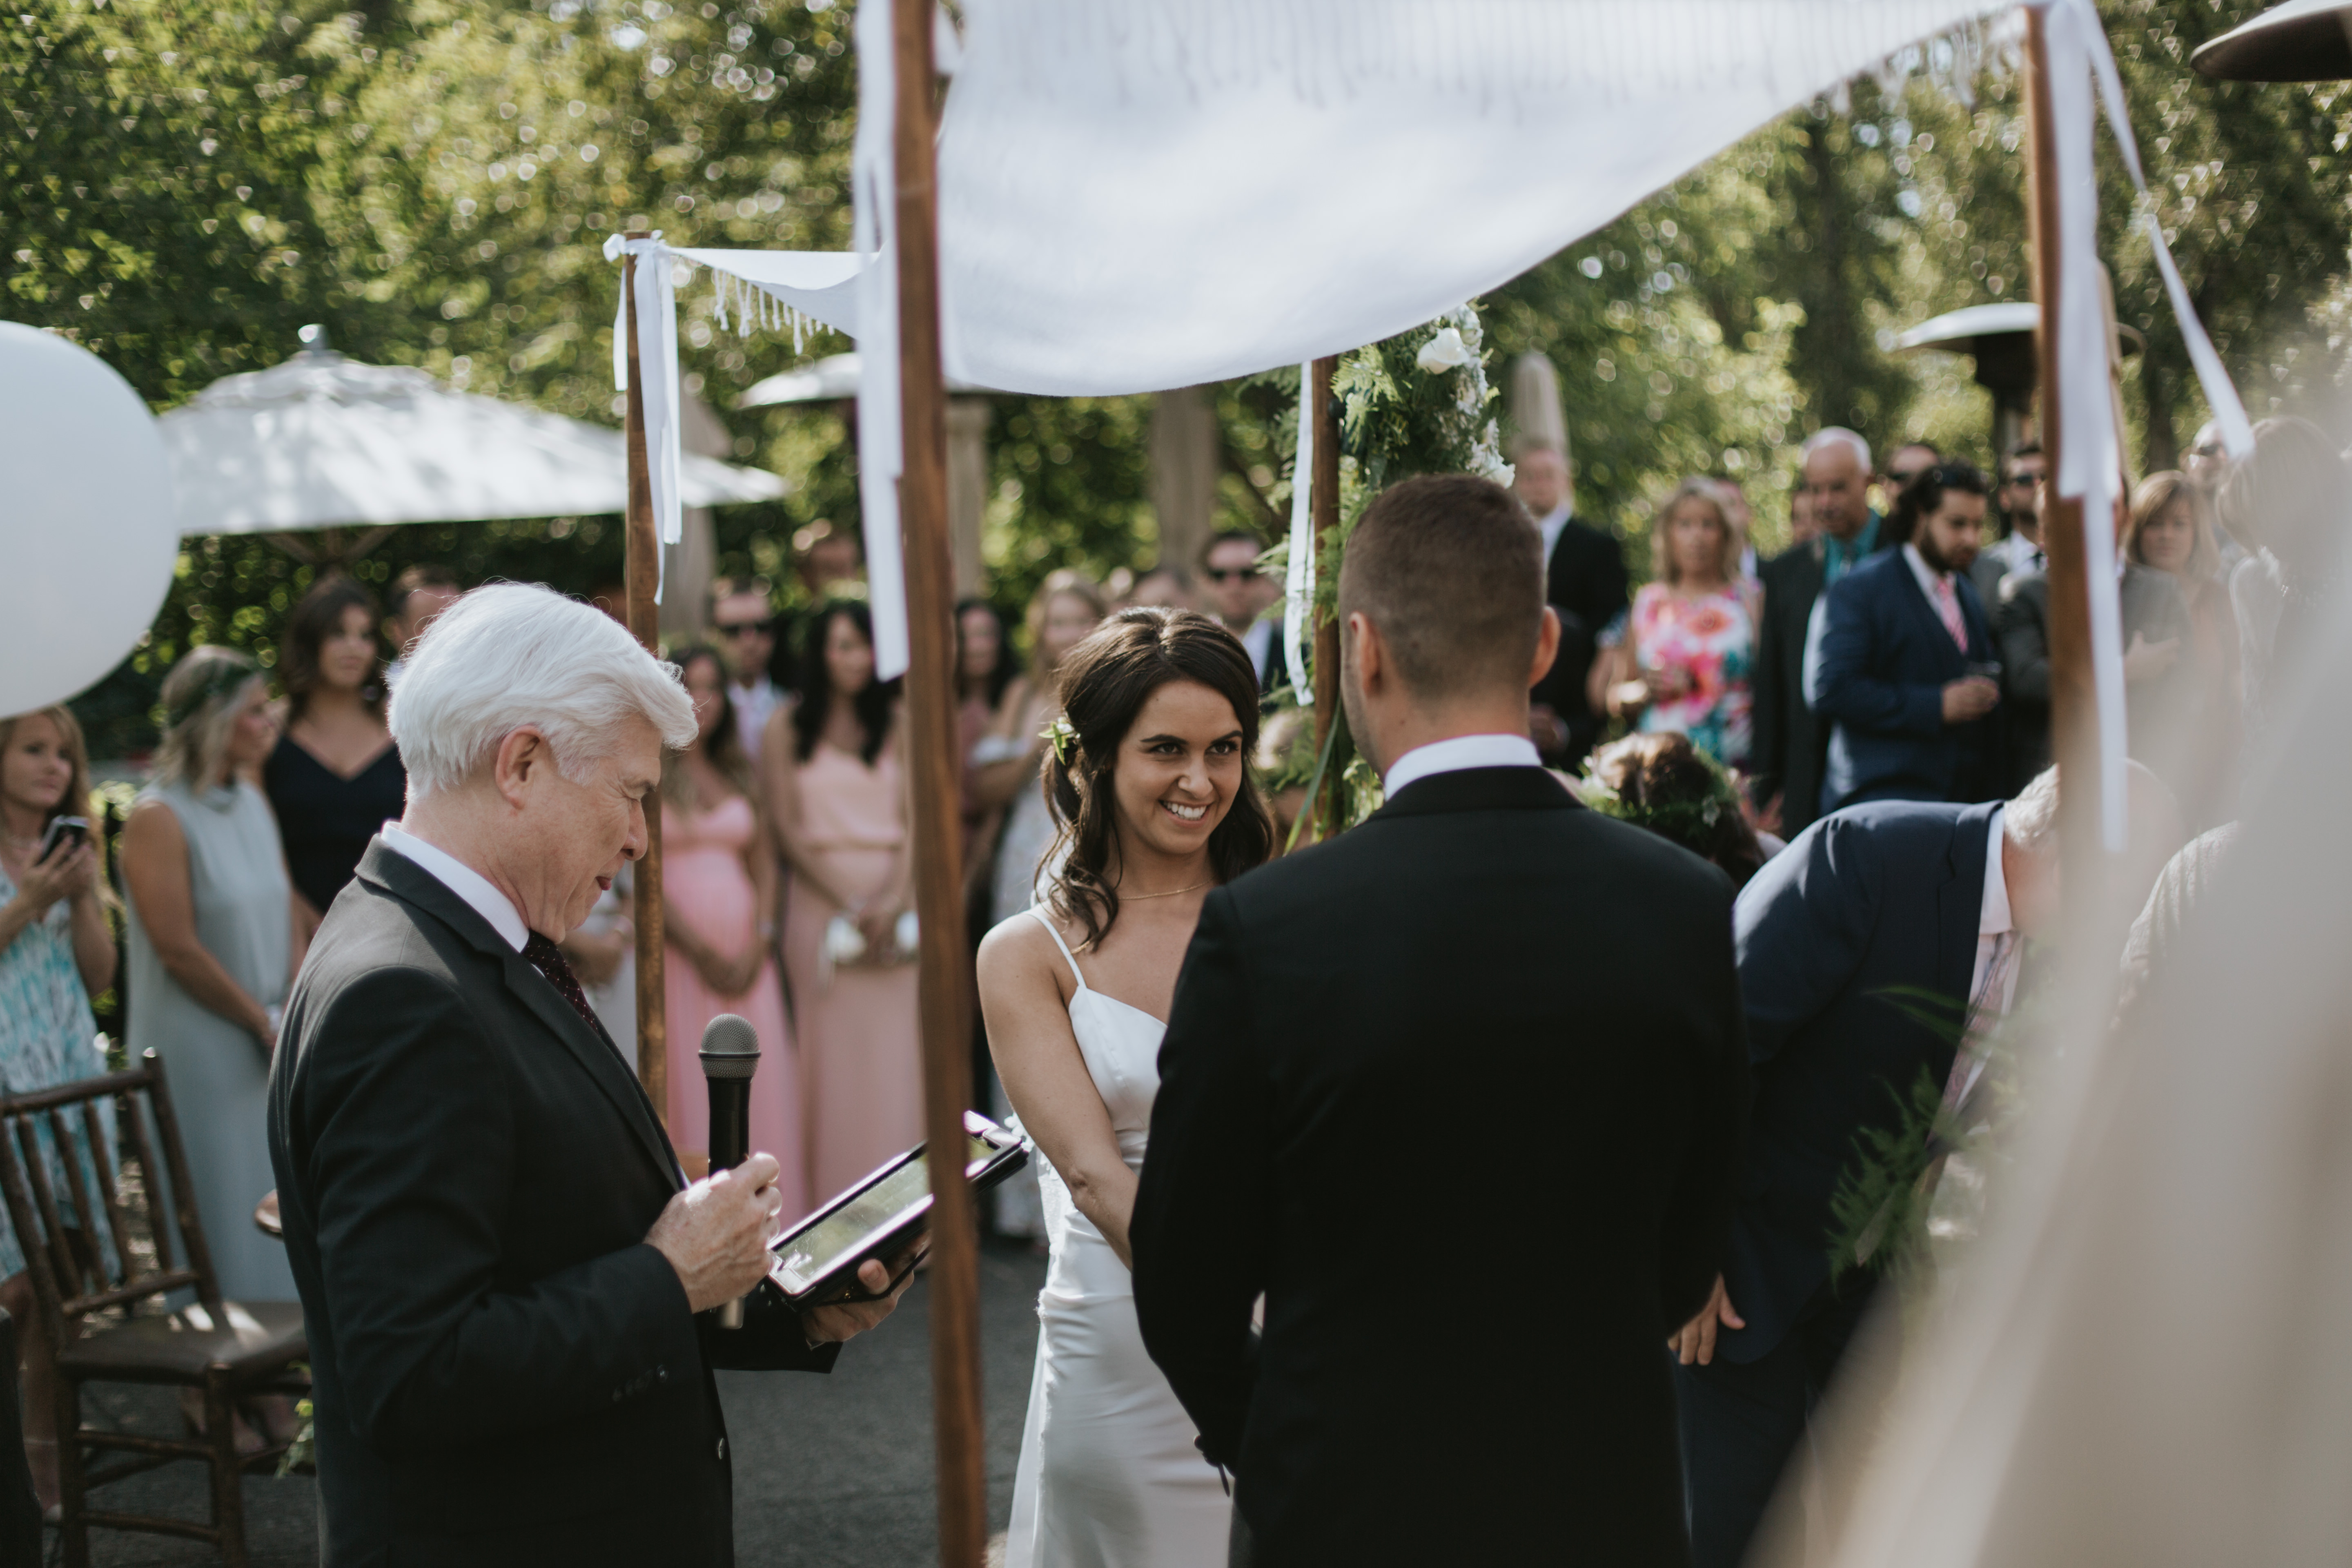 the bride almost cries when she sees her groom